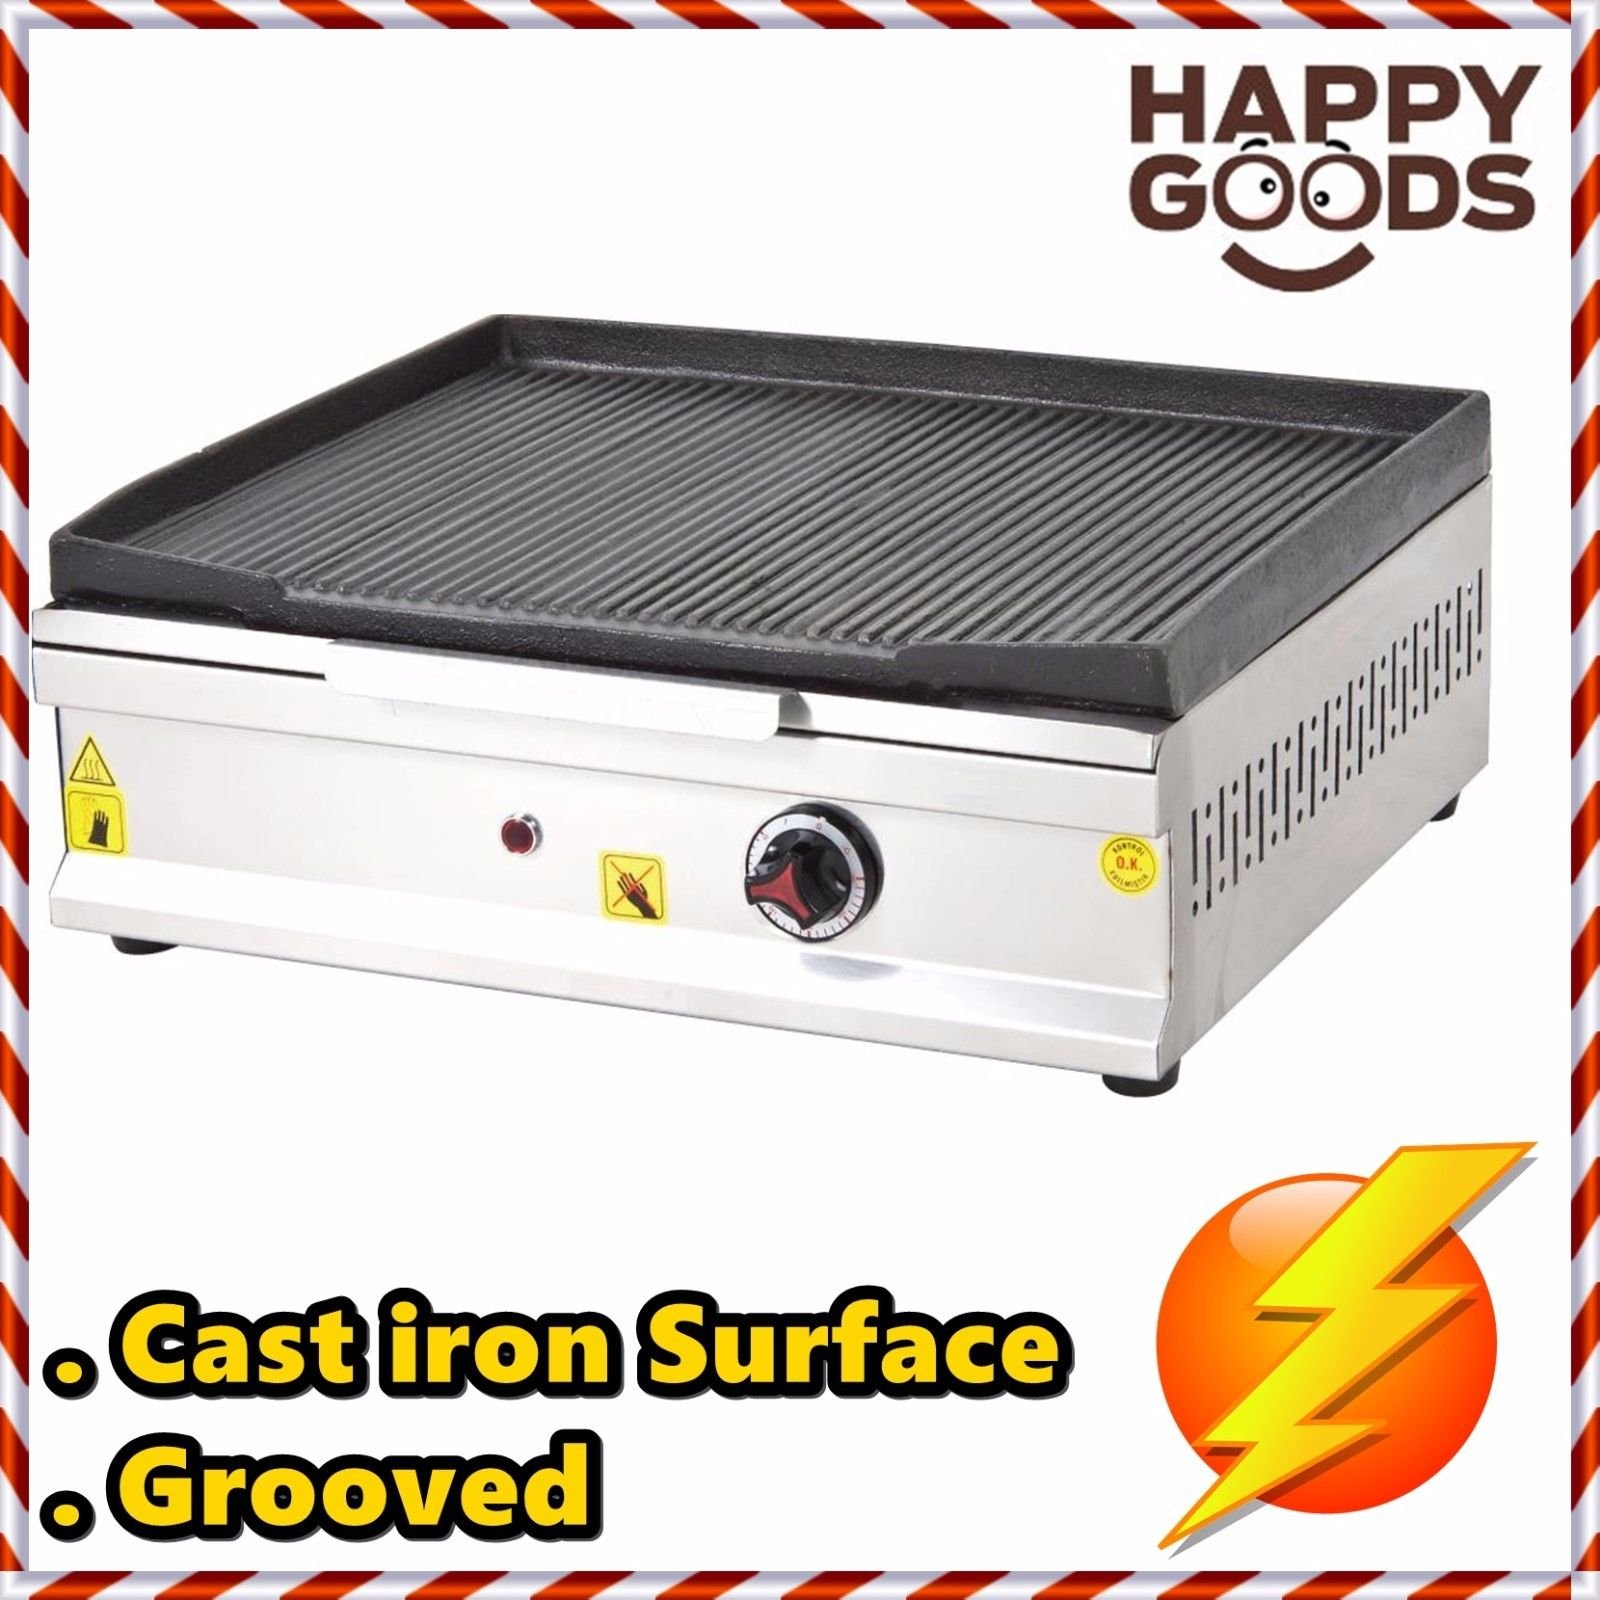 20 '' ( 50 cm ) Commercial Kitchen Equipment Electric Countertop GROOVED CAST IRON SURFACE Top Restaurant Grill Stove Cooktop Manual Griddle 220V